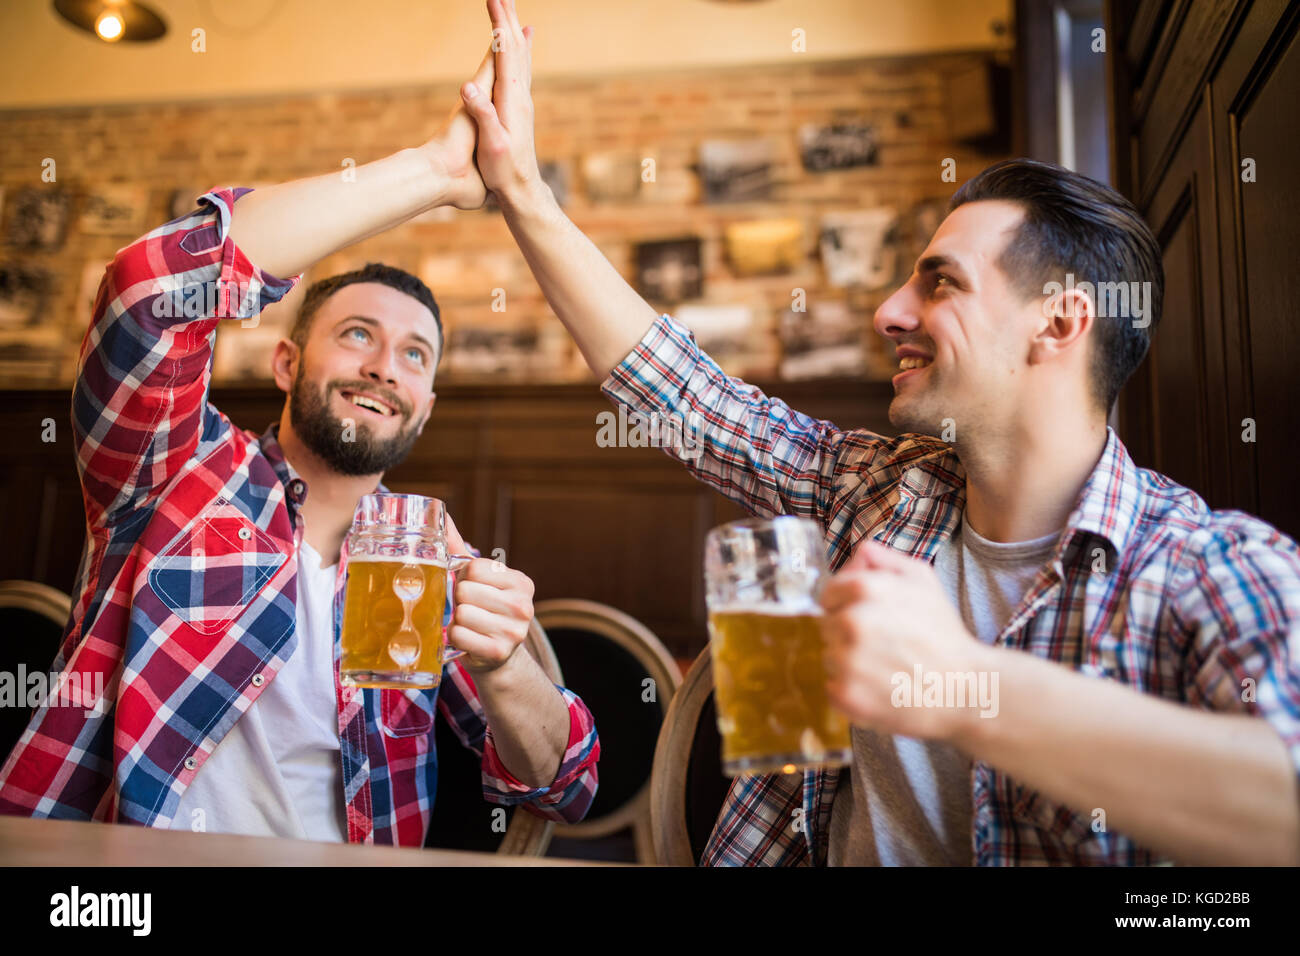 Happy young bearded man laughing high fiving his friend while having beer at the pub - Stock Image